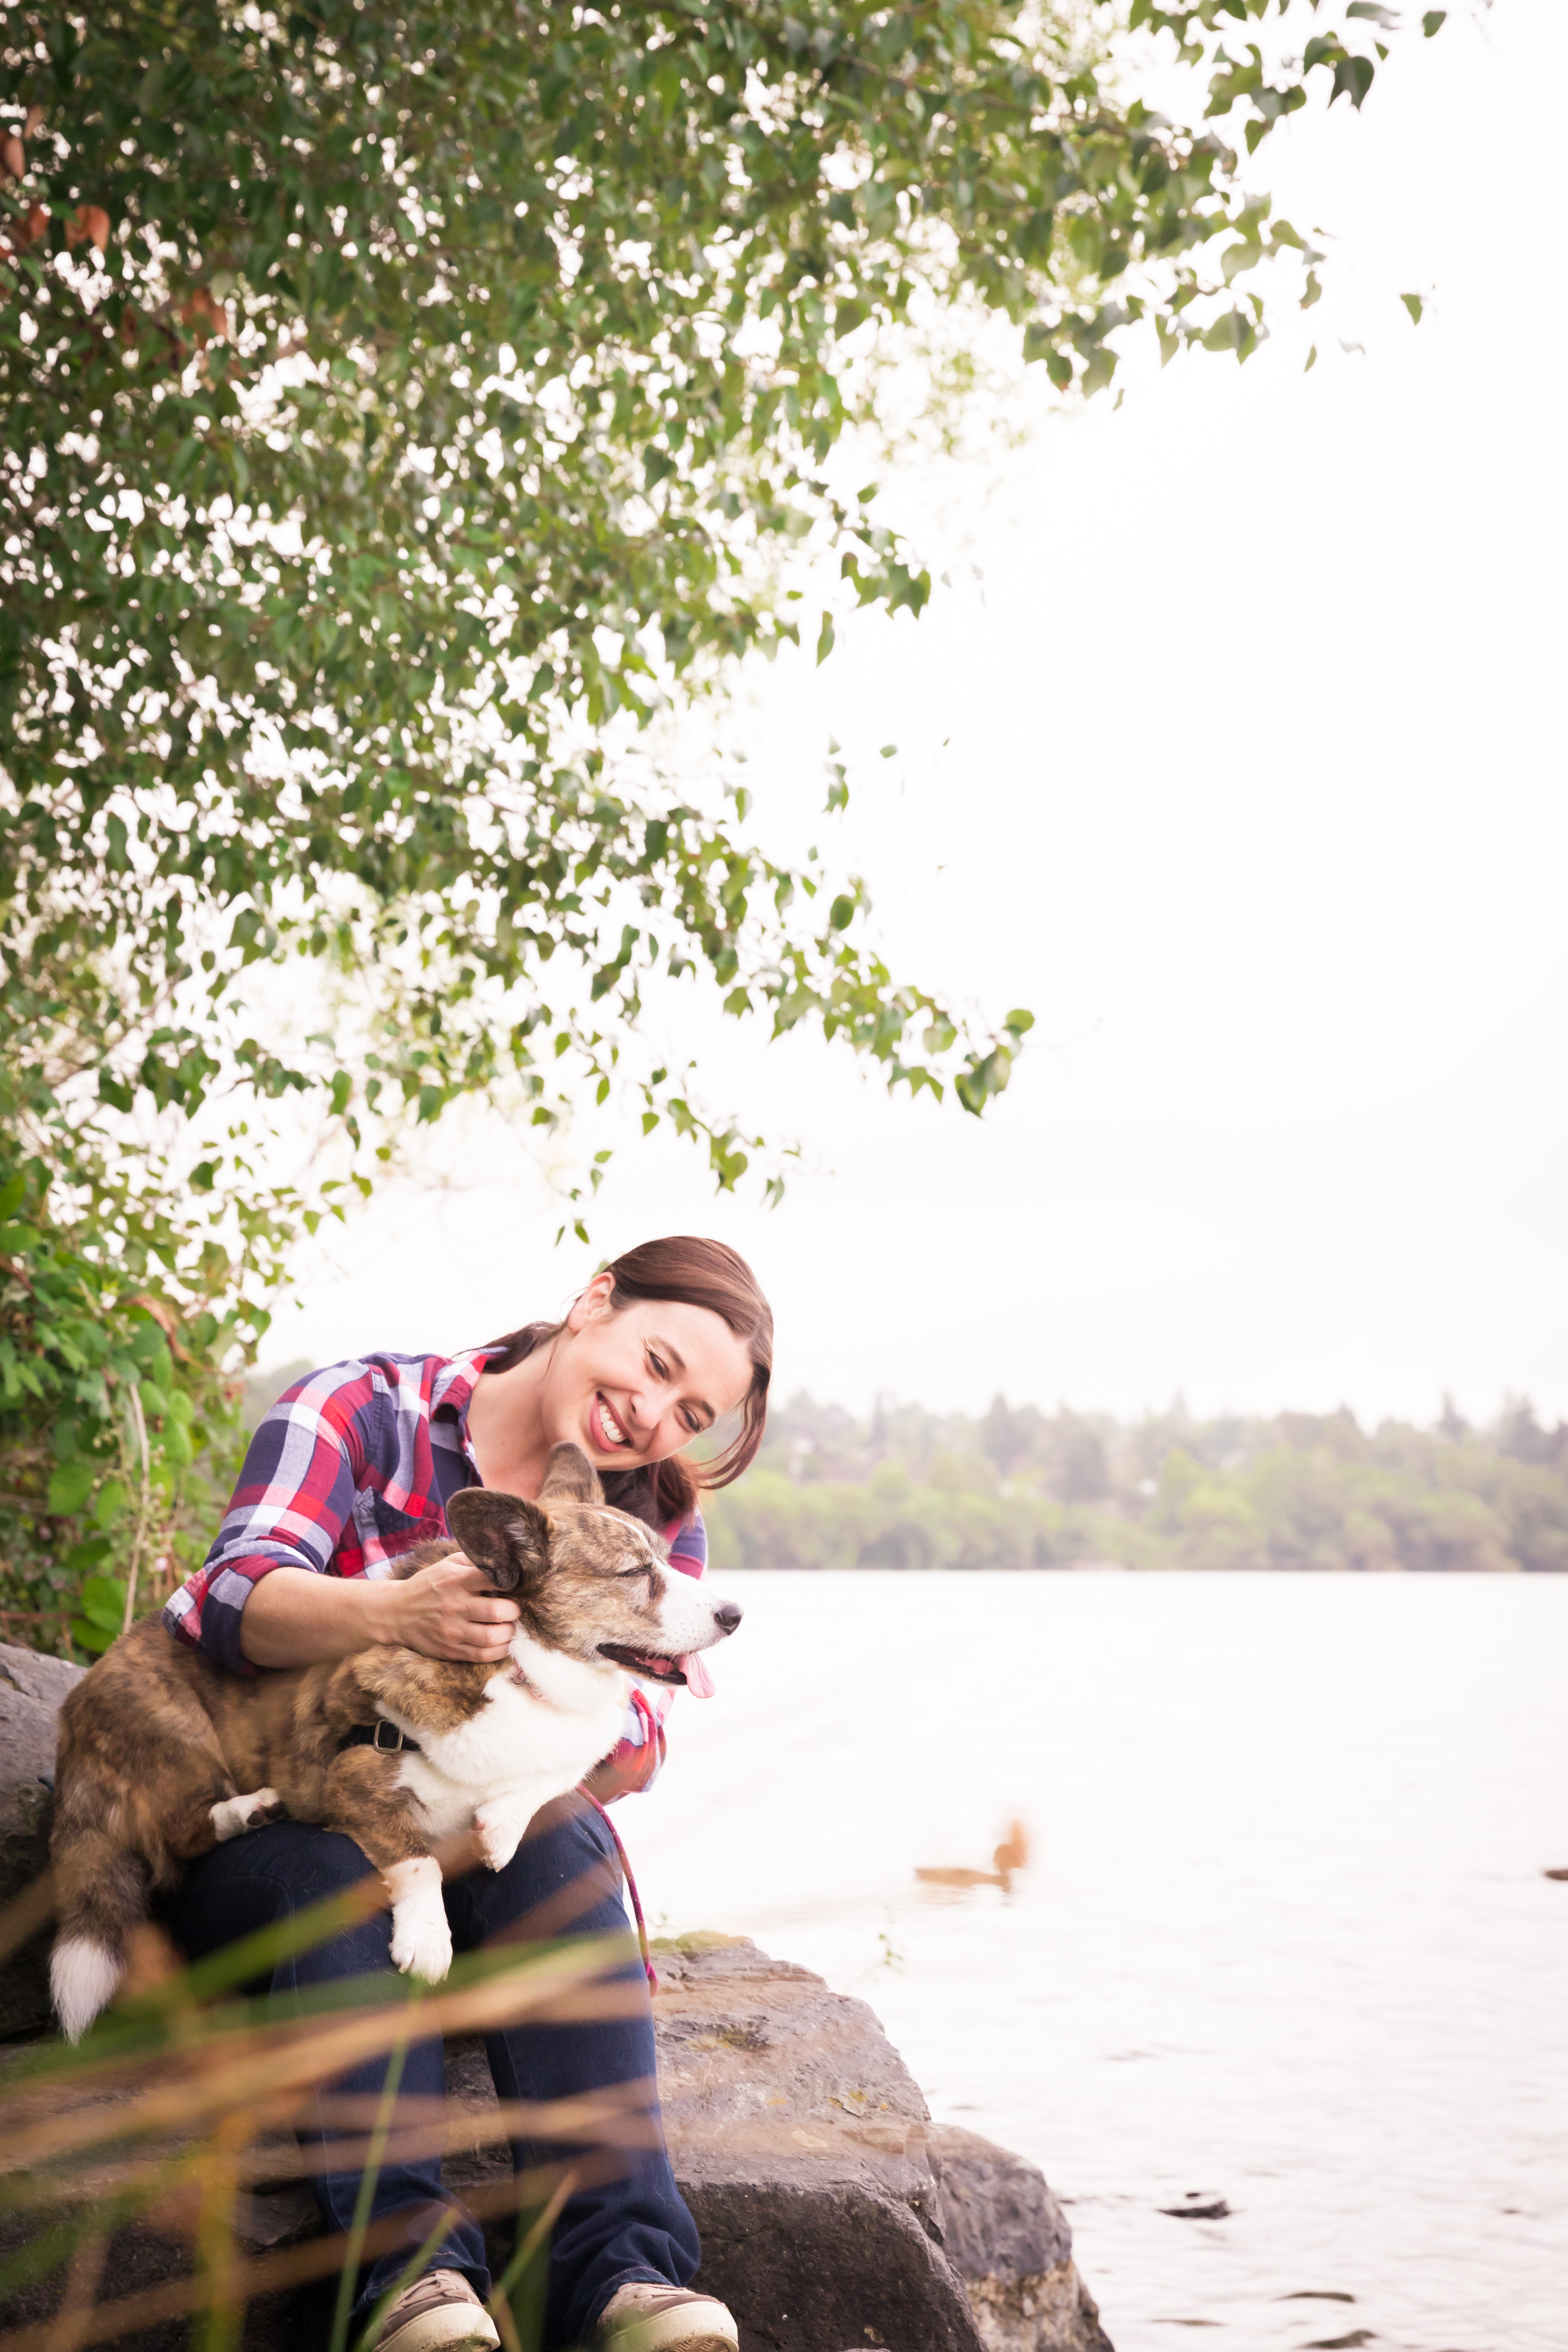 Cathy with her dog Sookie